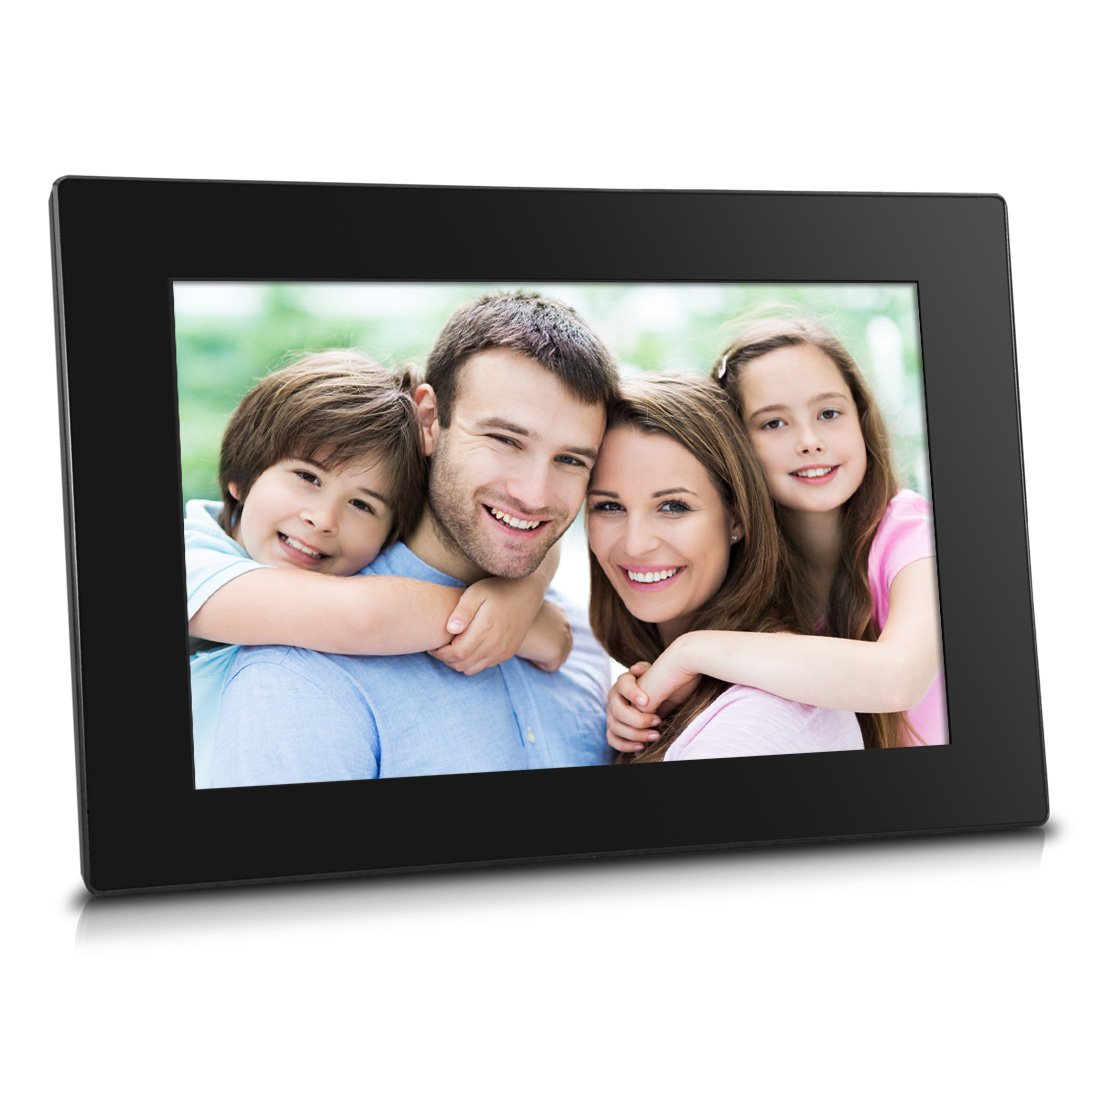 Amazon sungale cpf1051 10 inch wifi cloud digital photo amazon sungale cpf1051 10 inch wifi cloud digital photo frame with touch panel 8gb internal memory free cloud storage high resolution 1280x800 jeuxipadfo Gallery